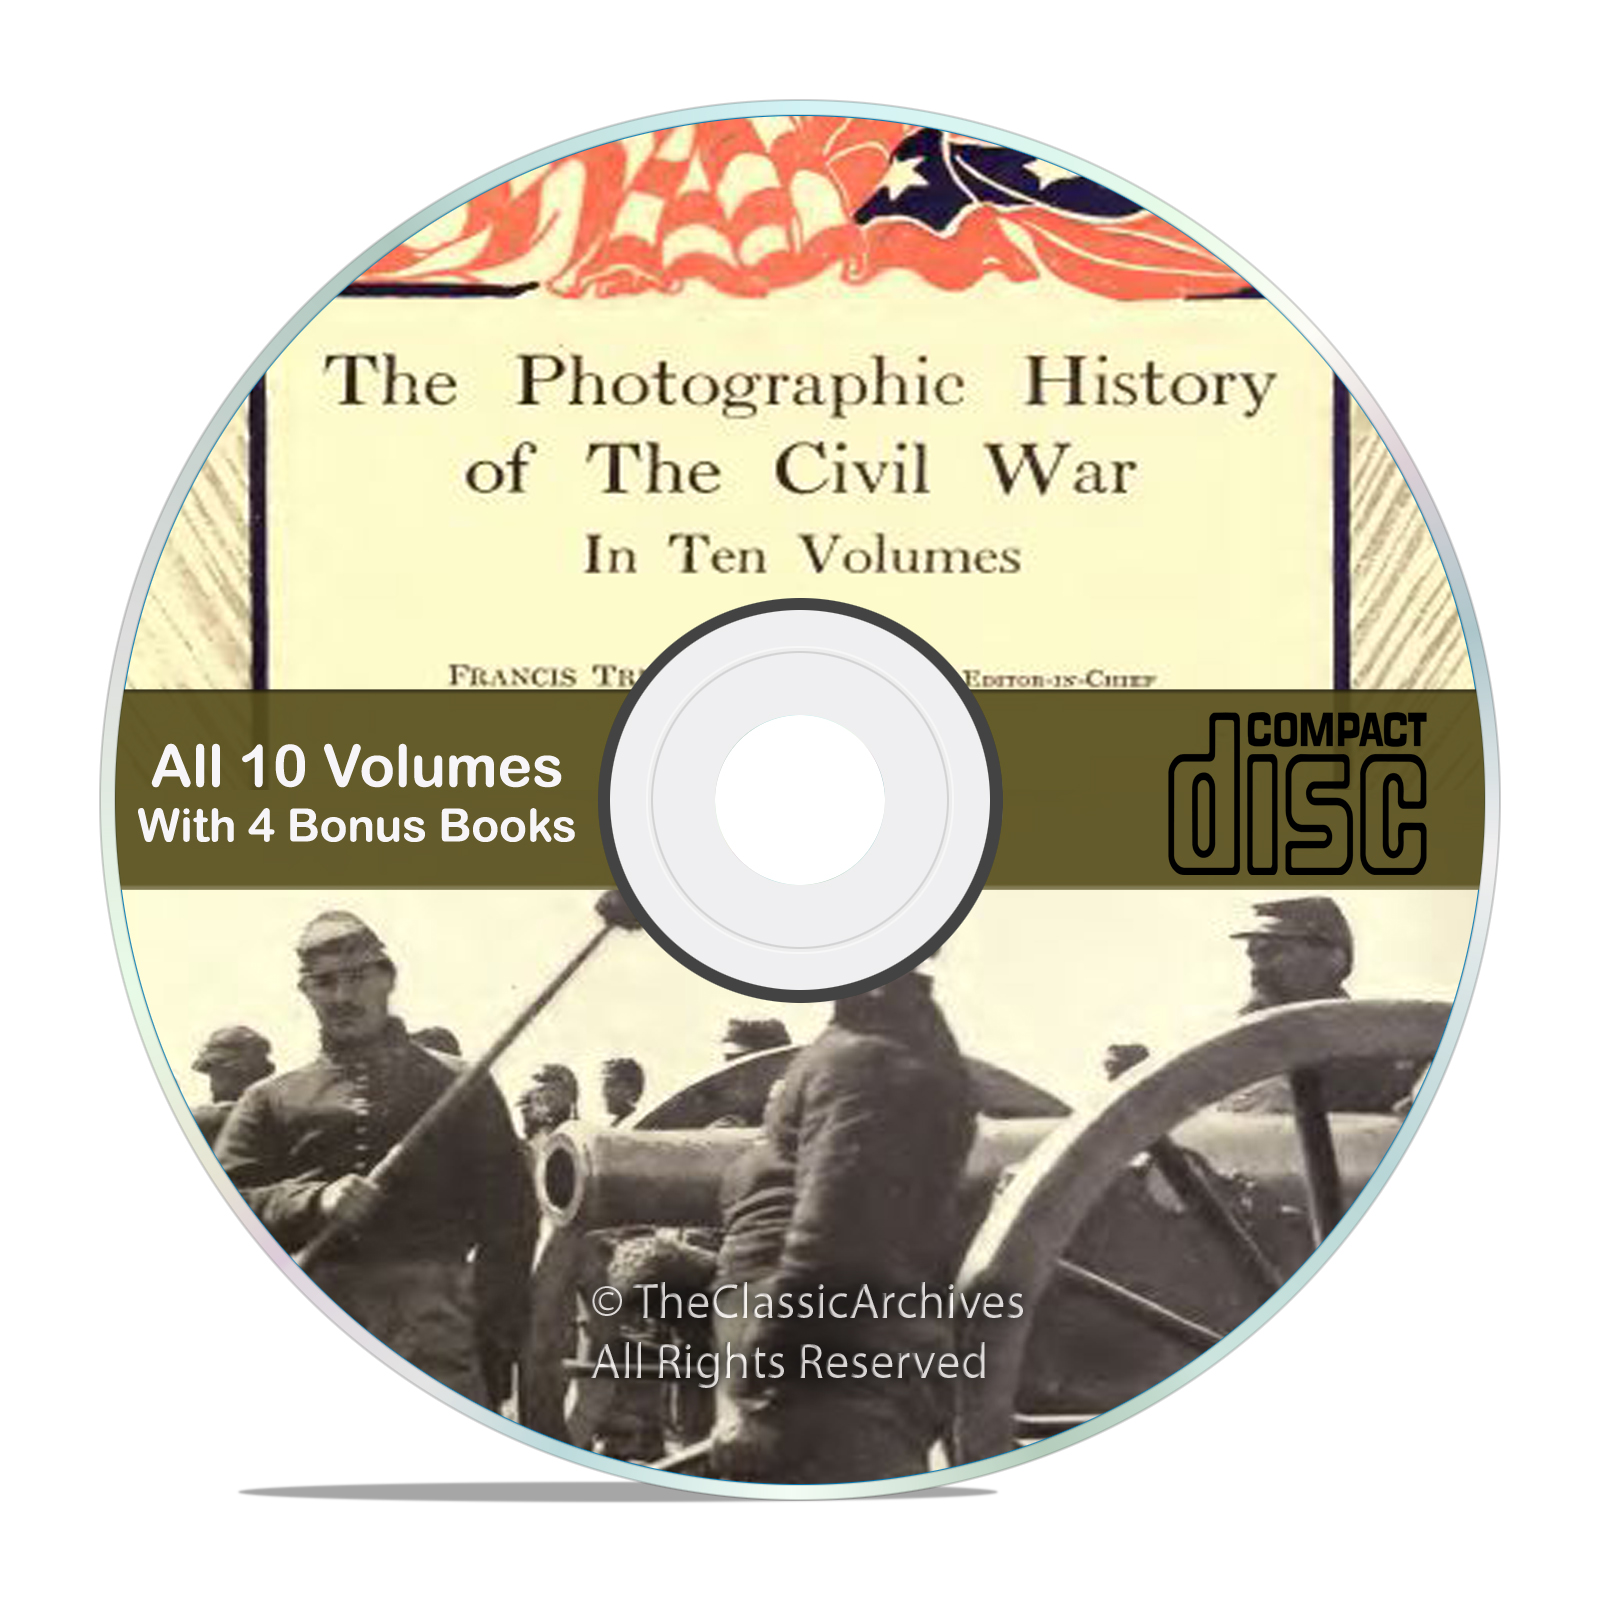 The Photographic History of the Civil War, 10 vol. set, pics, Books on CD